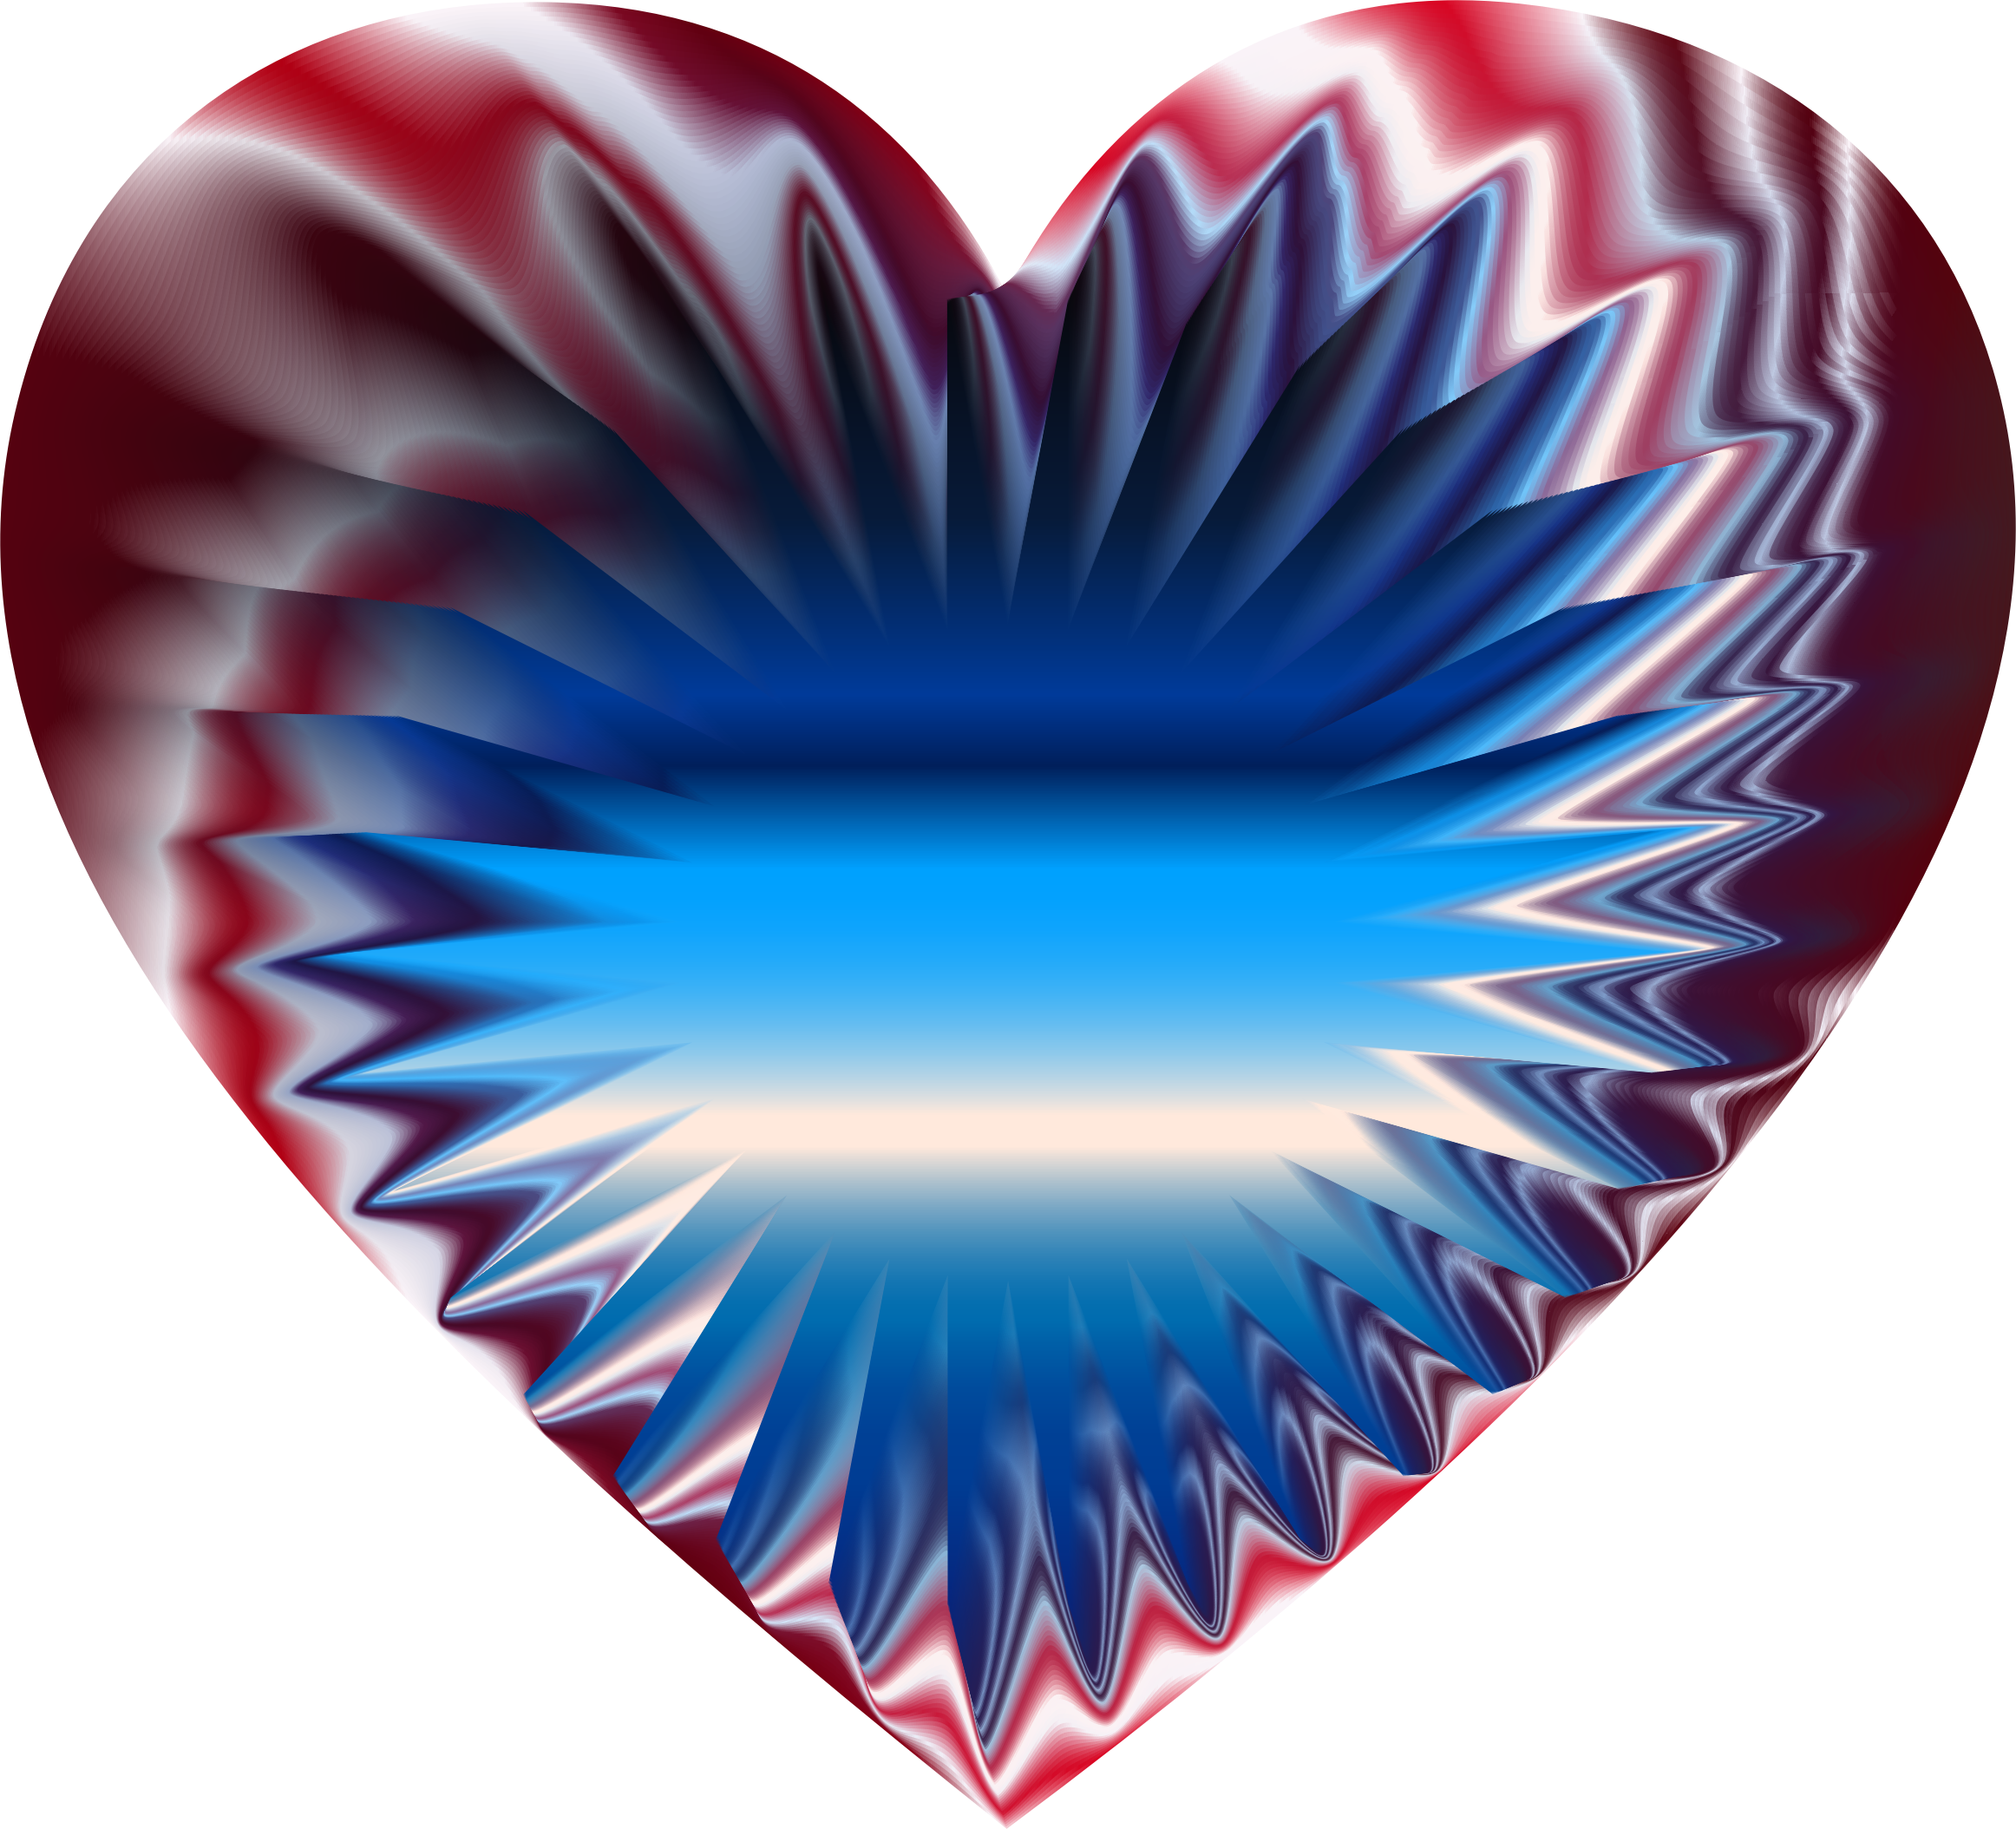 Colorful Refraction Heart 7 by GDJ